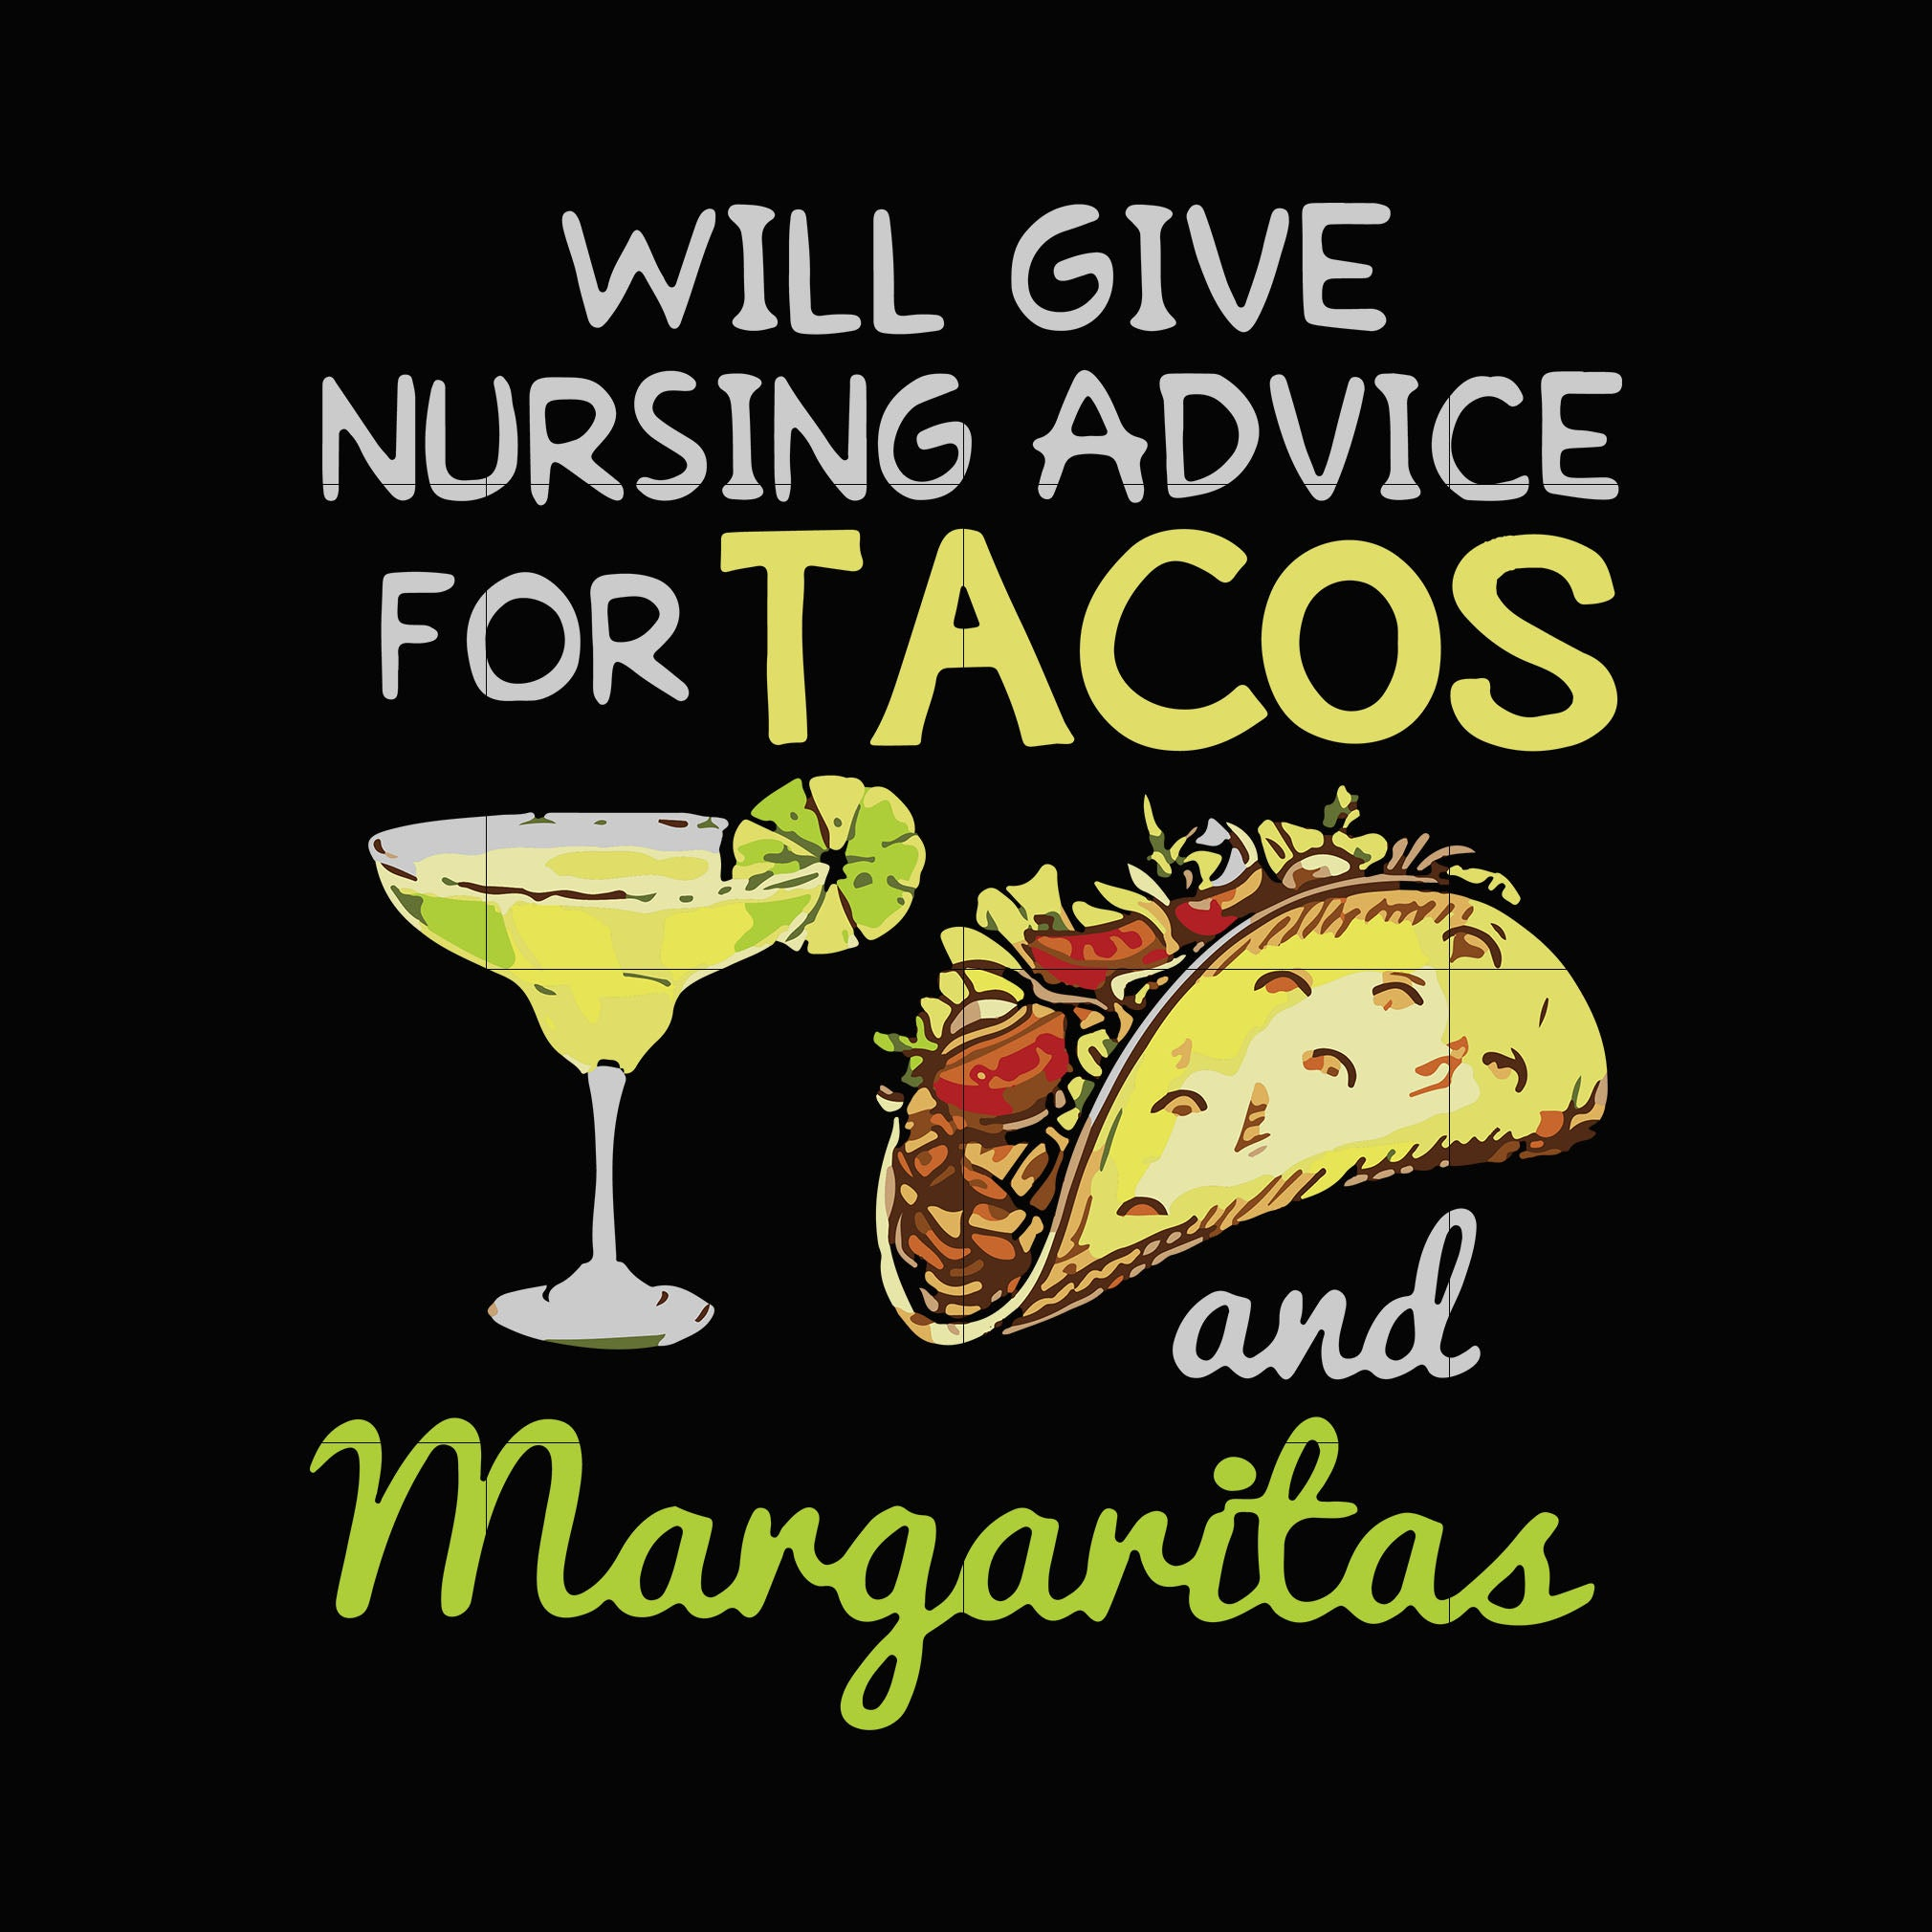 Will give nursing advice for tacos margaritas svg,dxf,eps,png digital file